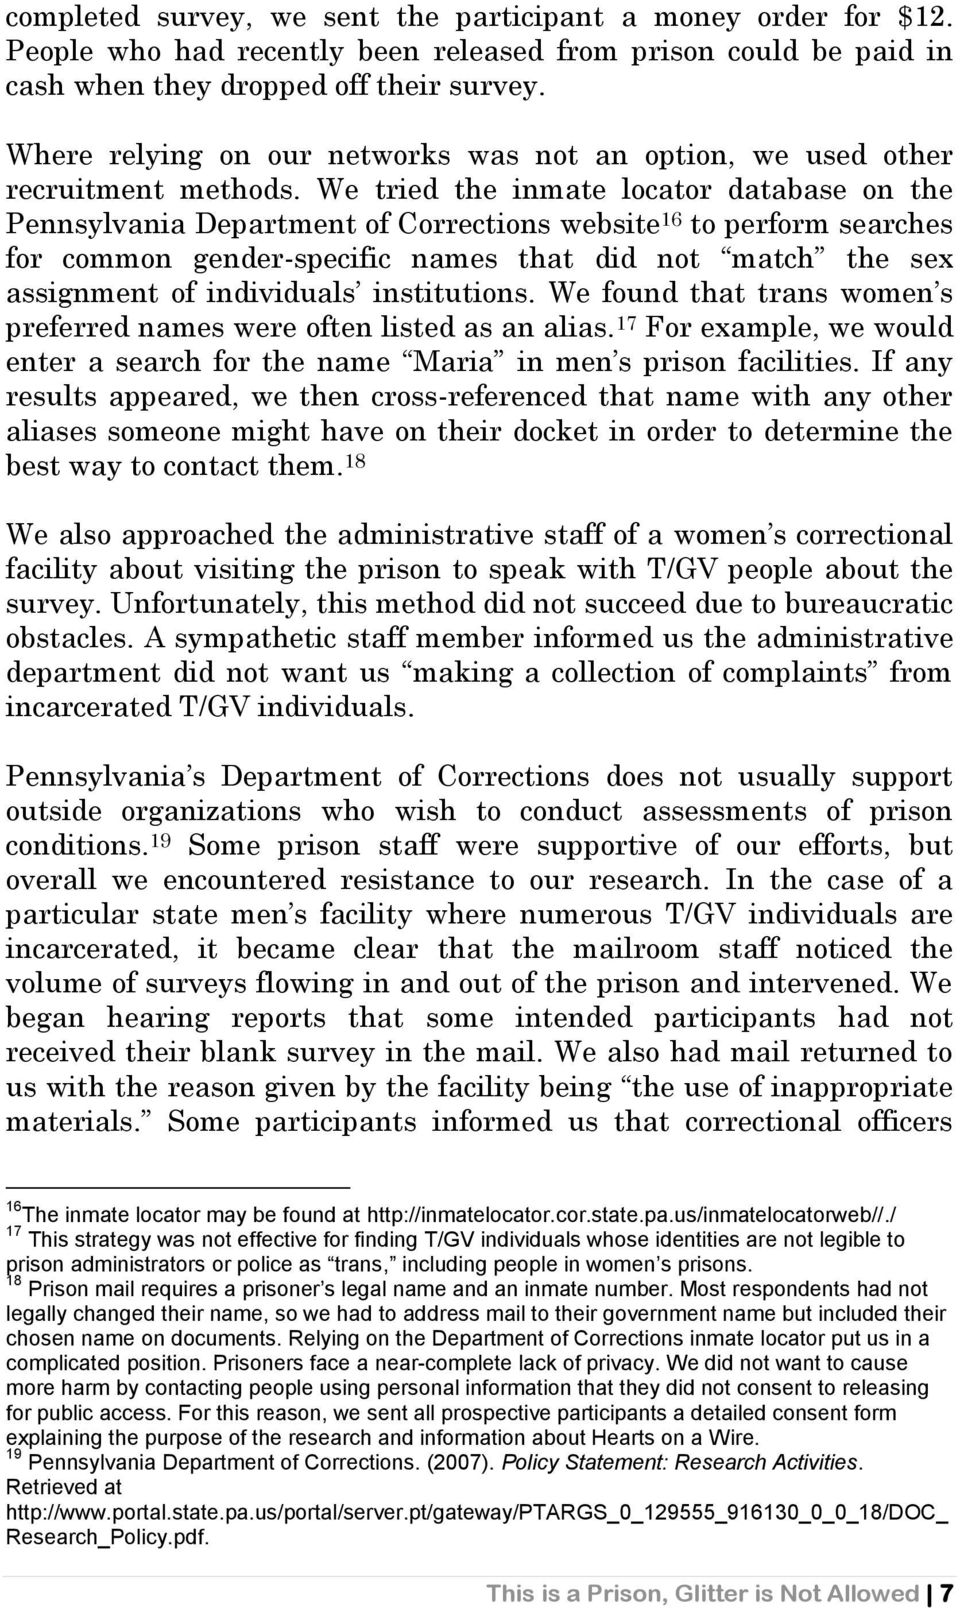 We tried the inmate locator database on the Pennsylvania Department of Corrections website 16 to perform searches for common gender-specific names that did not match the sex assignment of individuals